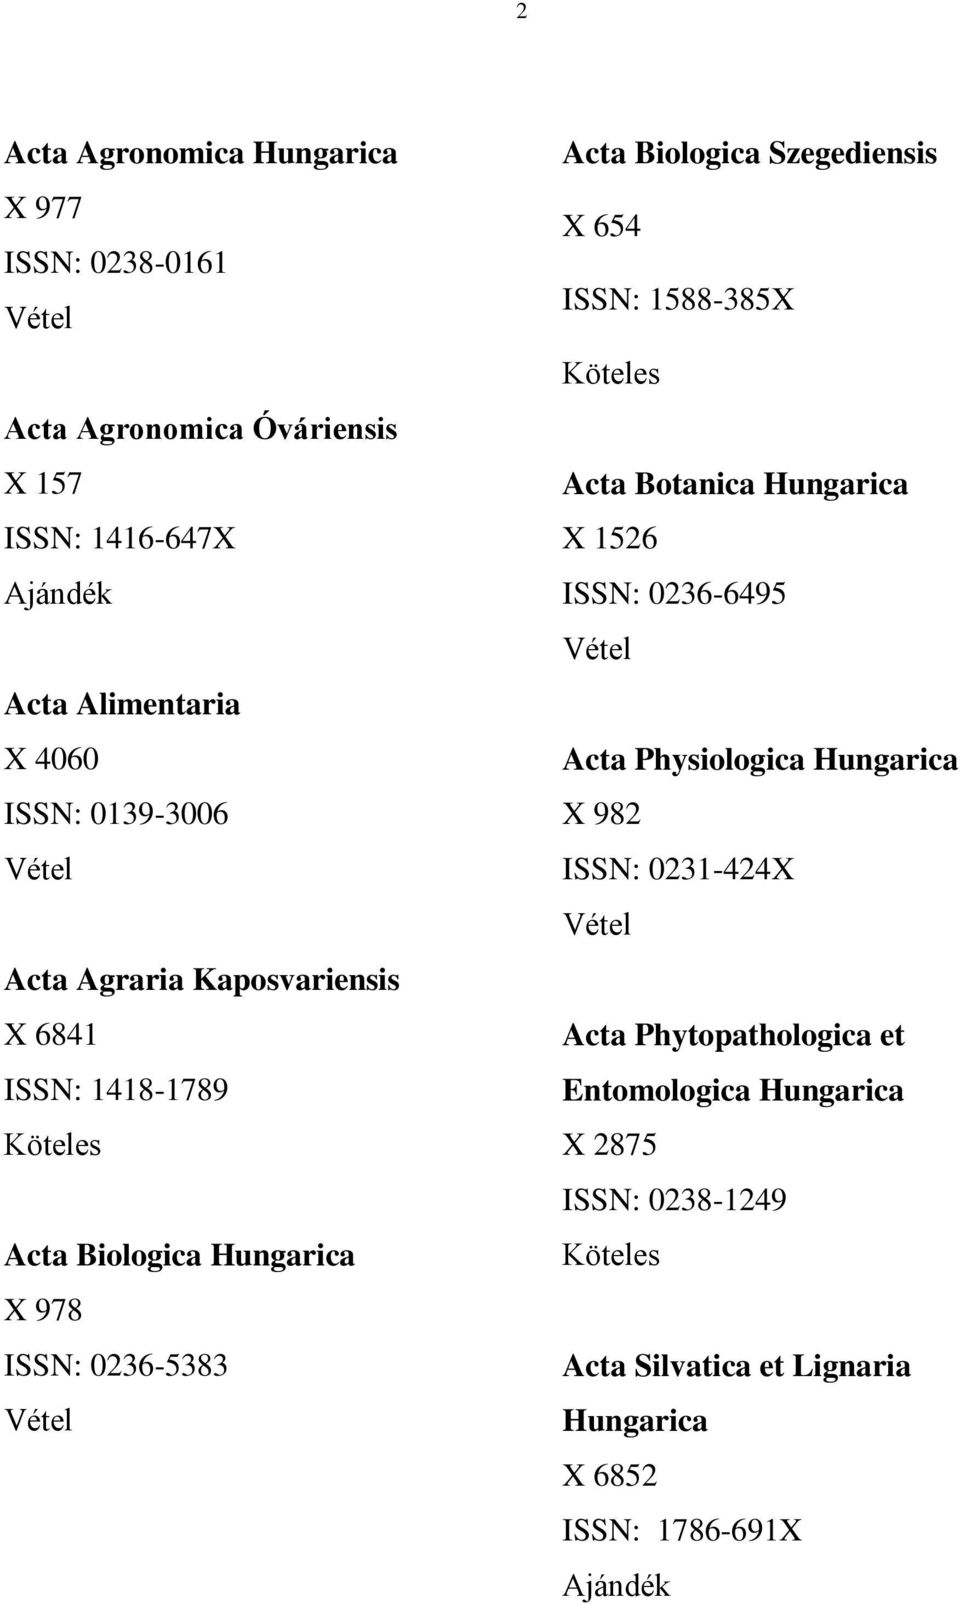 Szegediensis X 654 ISSN: 1588-385X Acta Botanica Hungarica X 1526 ISSN: 0236-6495 Acta Physiologica Hungarica X 982 ISSN: